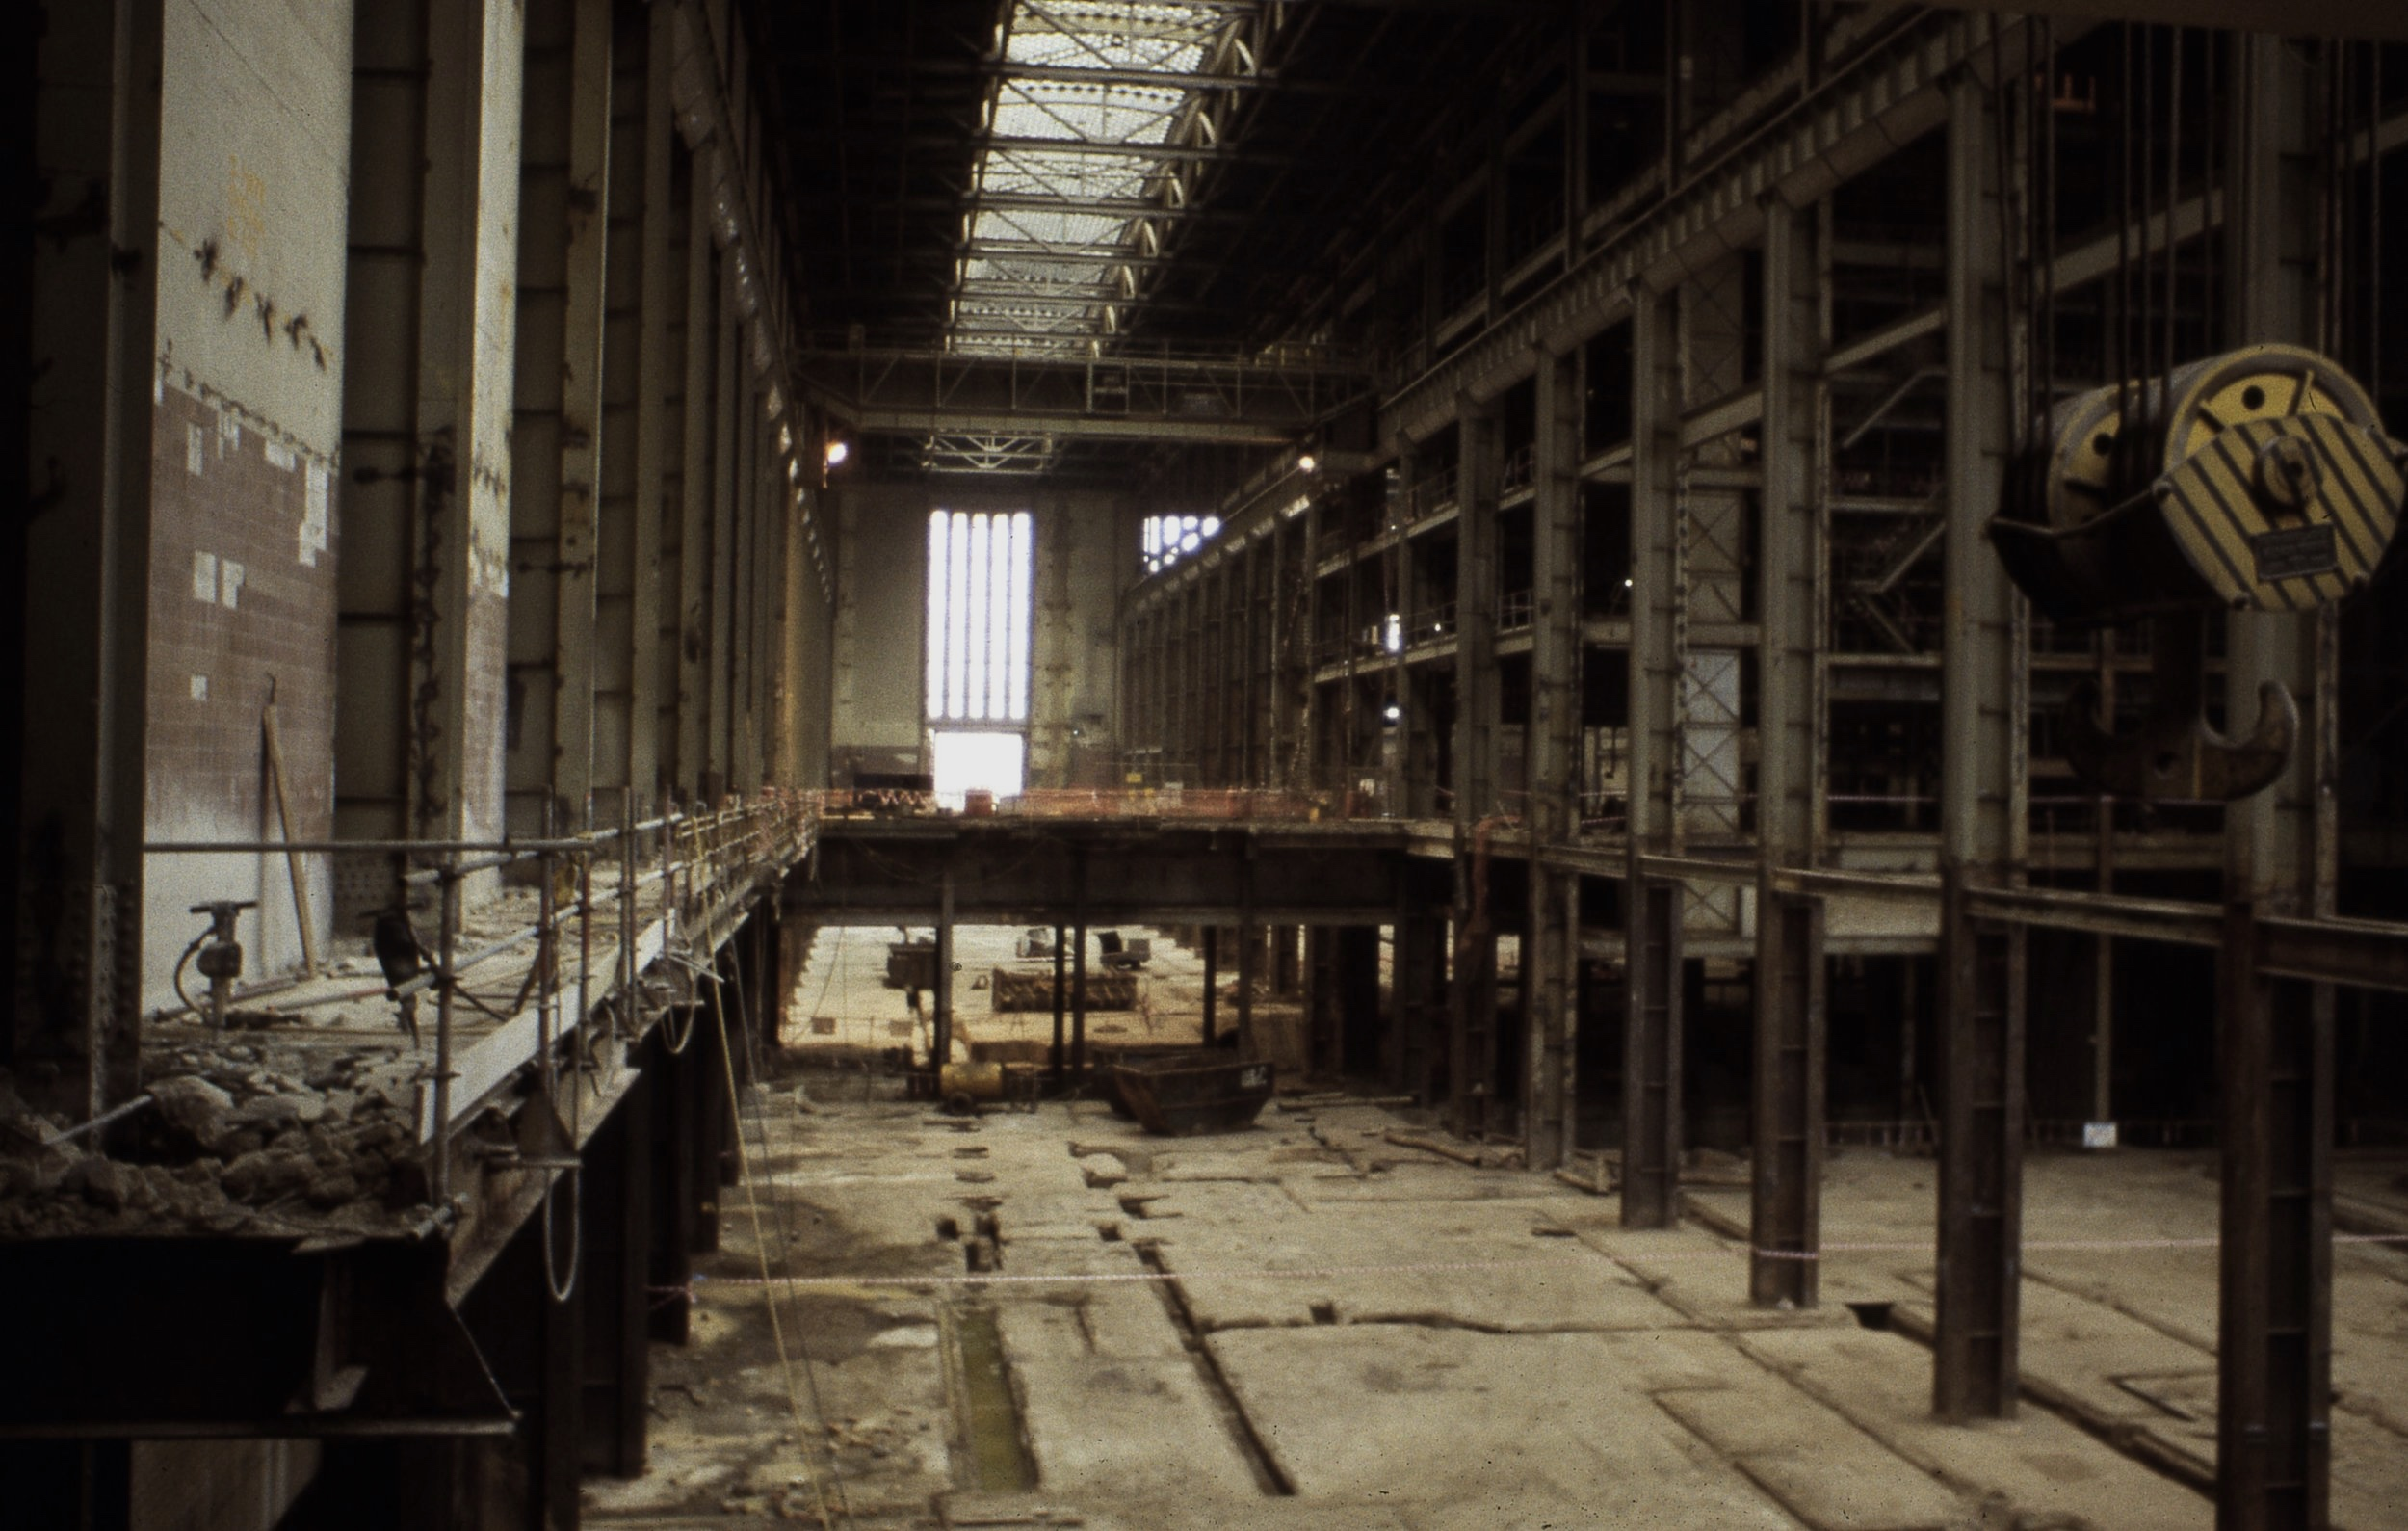 Copy of Tate Modern 1996